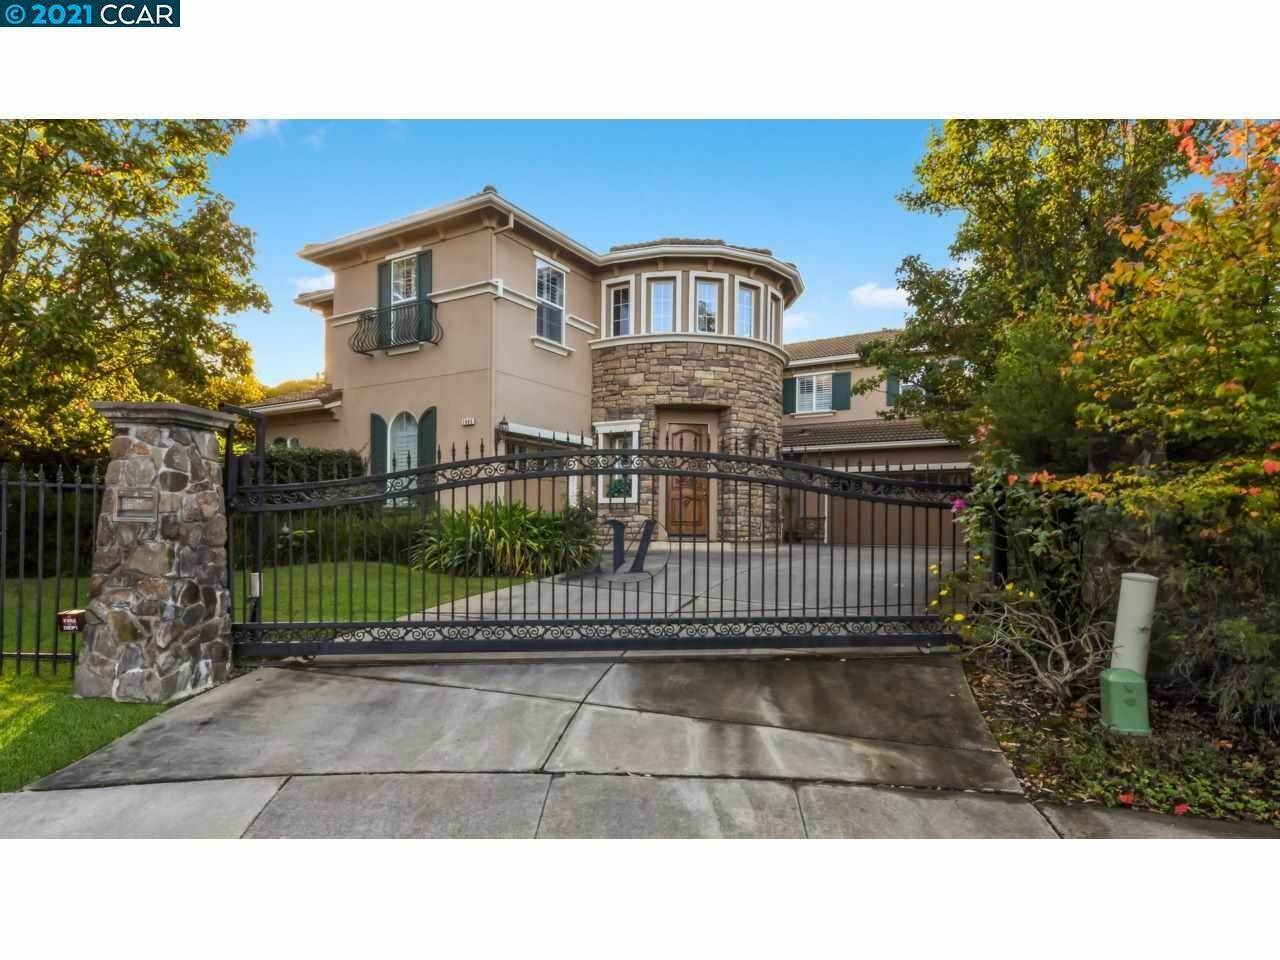 Single Family Homes for Sale at 1985 Beltaine Court Vallejo, California 94591 United States